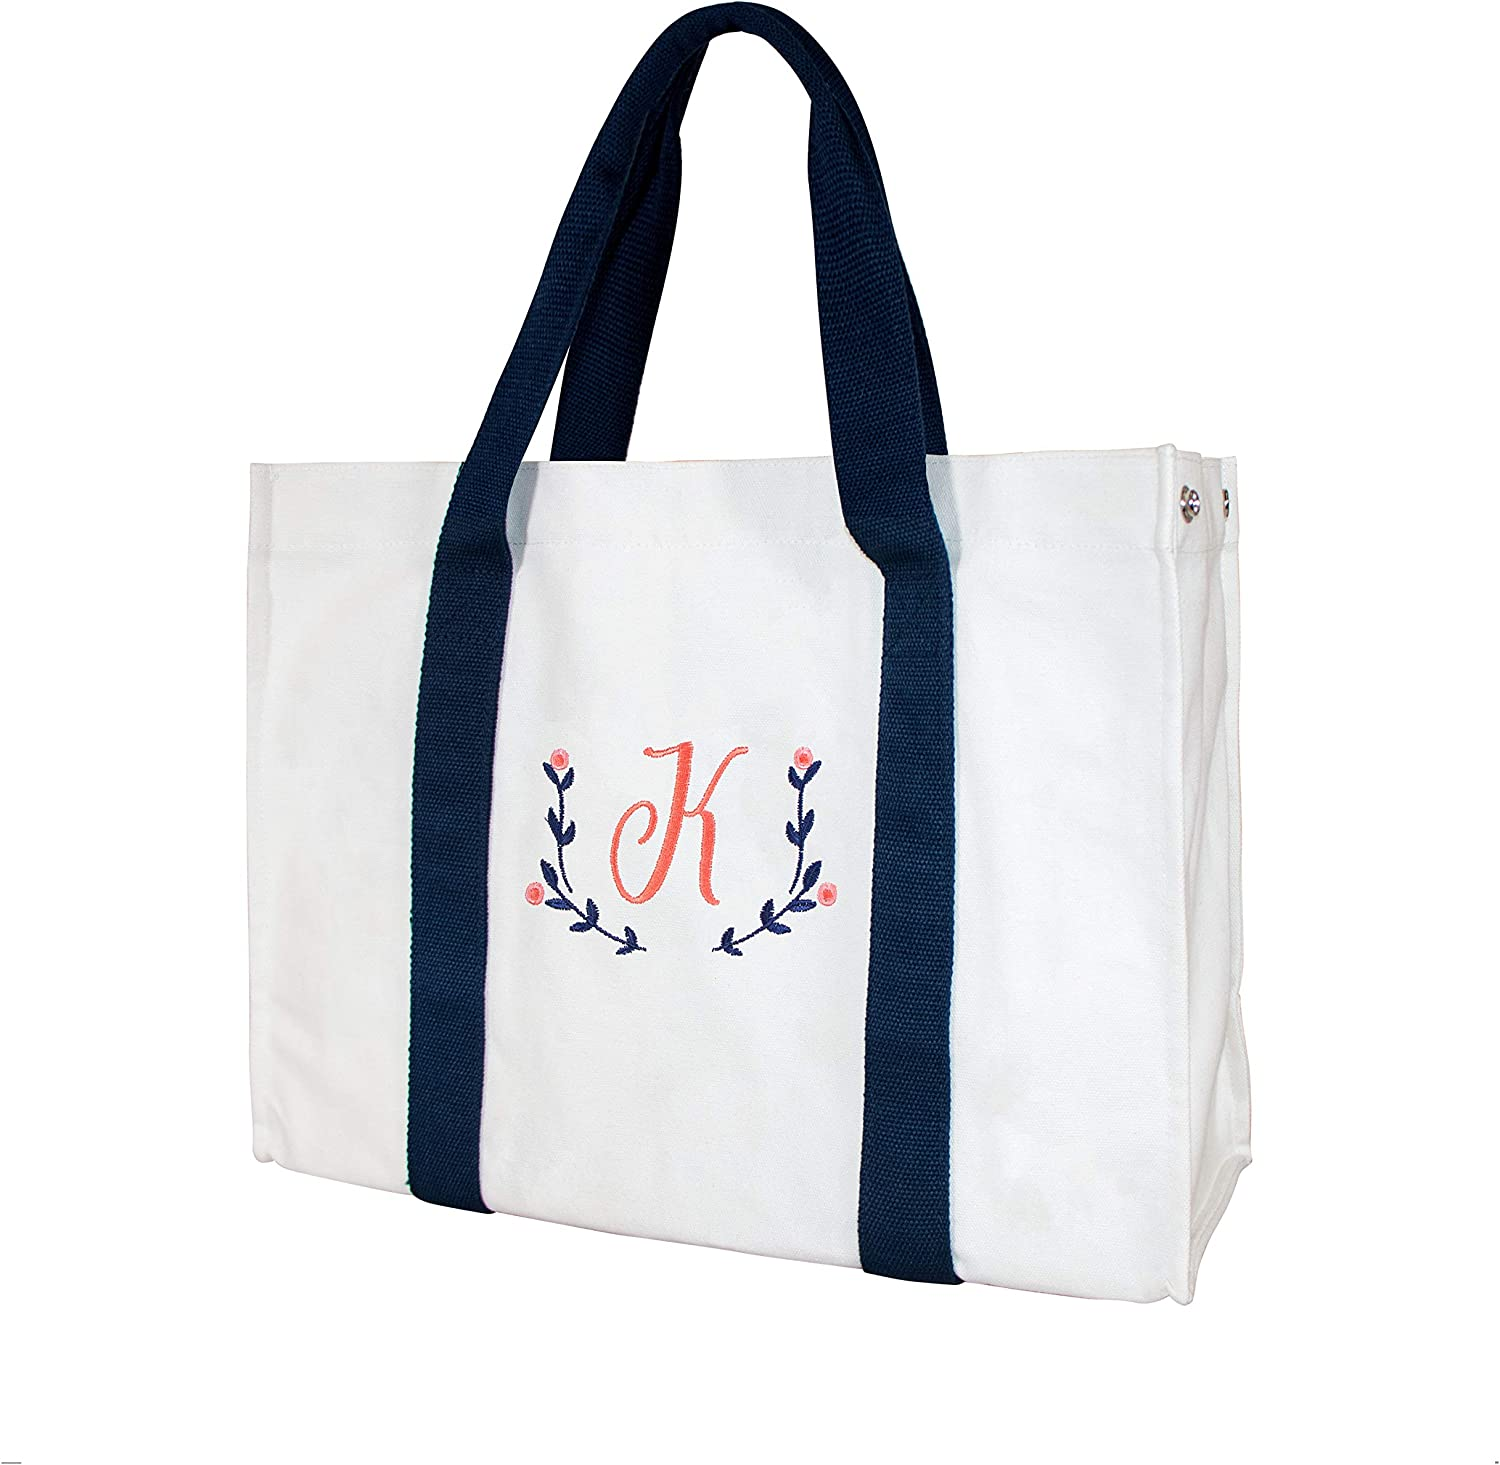 ElegantPark Monogrammed Gifts for Women Personalized Gifts Bag Embroidered Monogram K Initial Bag Tote for Wedding Gifts Birthday Gifts Teacher Gifts Bag with Pocket Cotton Canvas